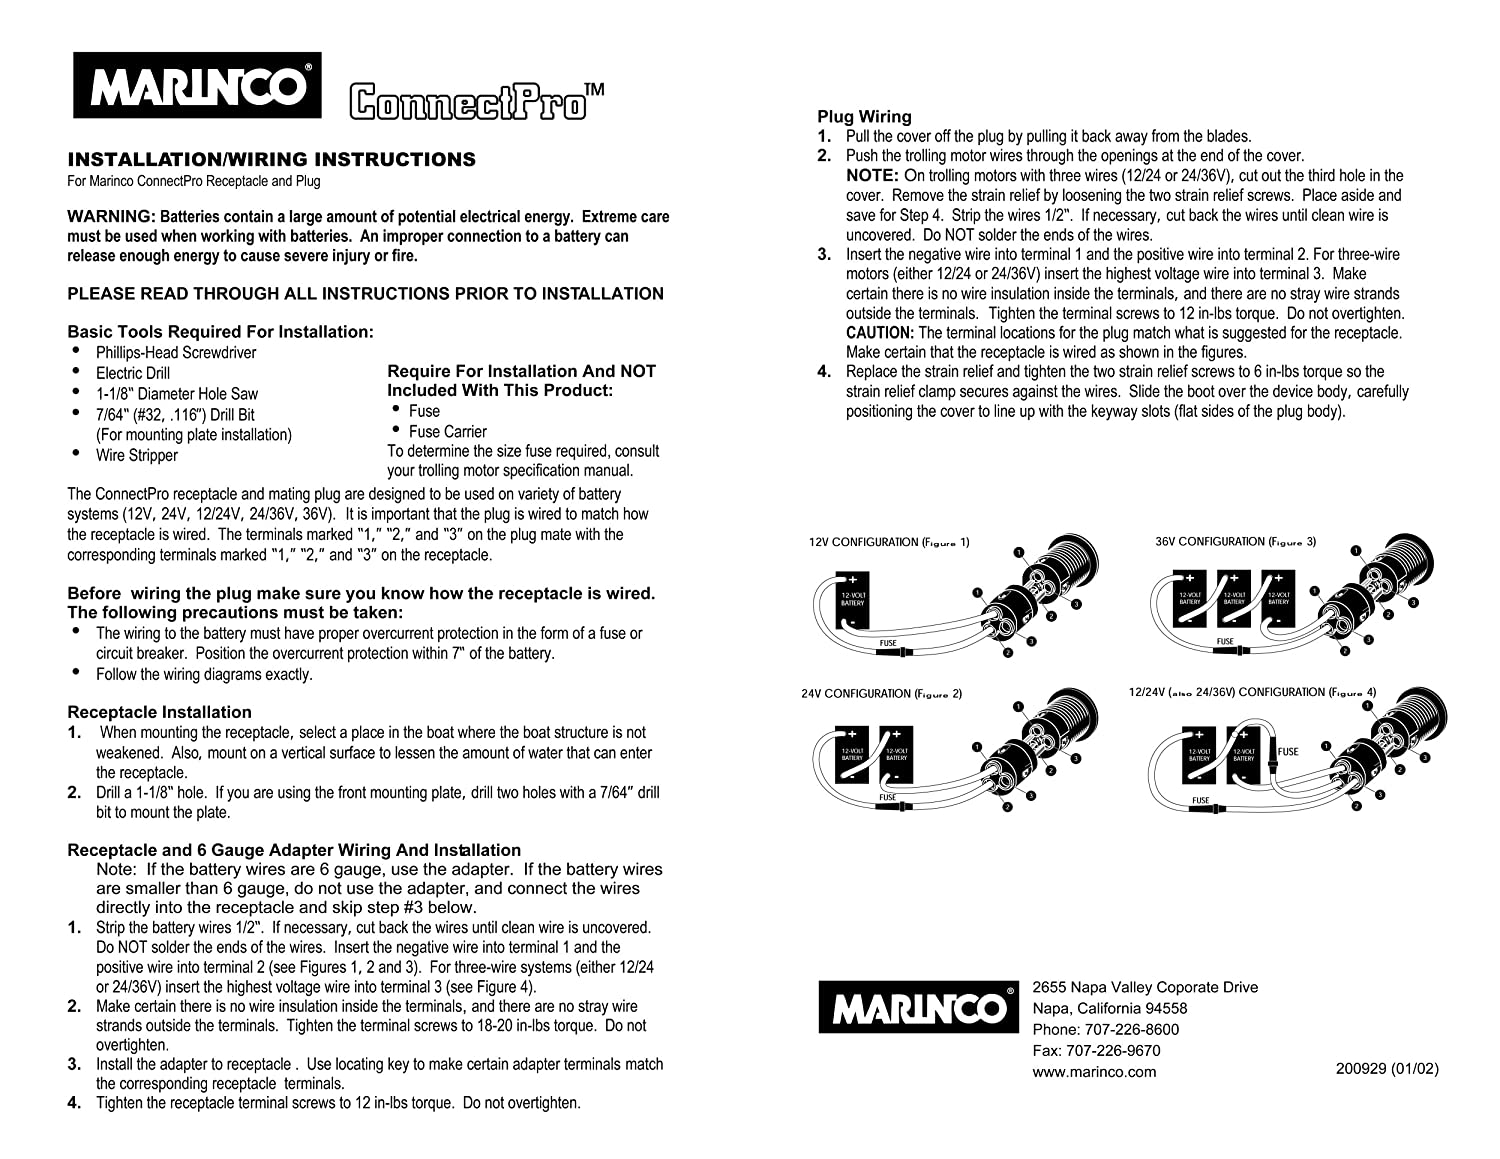 91ULQH2Yk6S._SL1500_ amazon com marinco 2 wire connectpro plug sports & outdoors marinco 4 prong plug wiring diagram at edmiracle.co